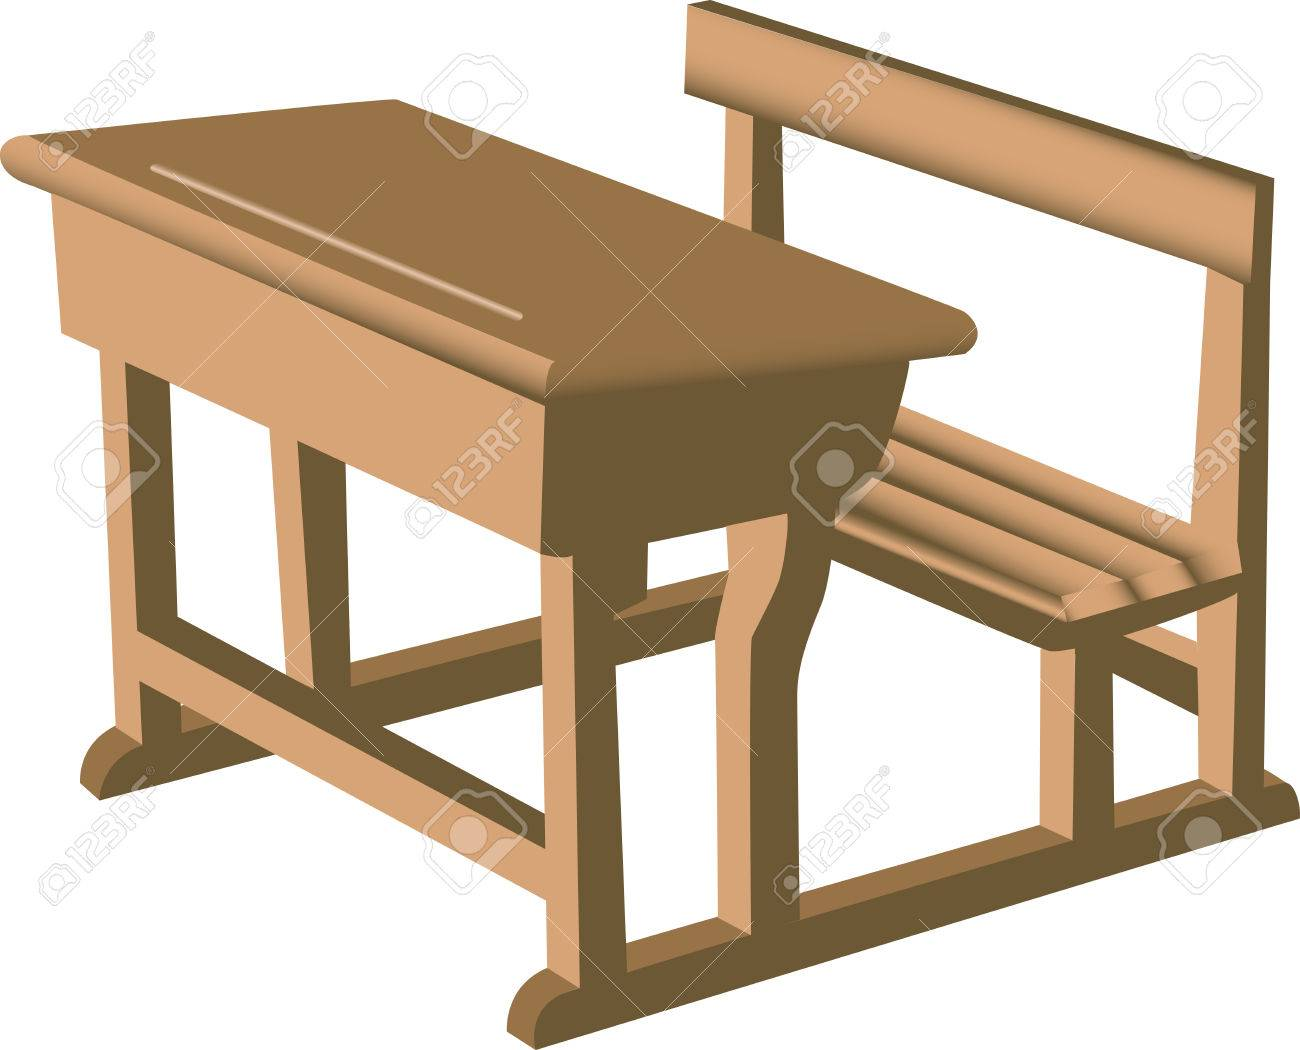 Illustration Of A Brown School Like Wooden Desk With Attached ...